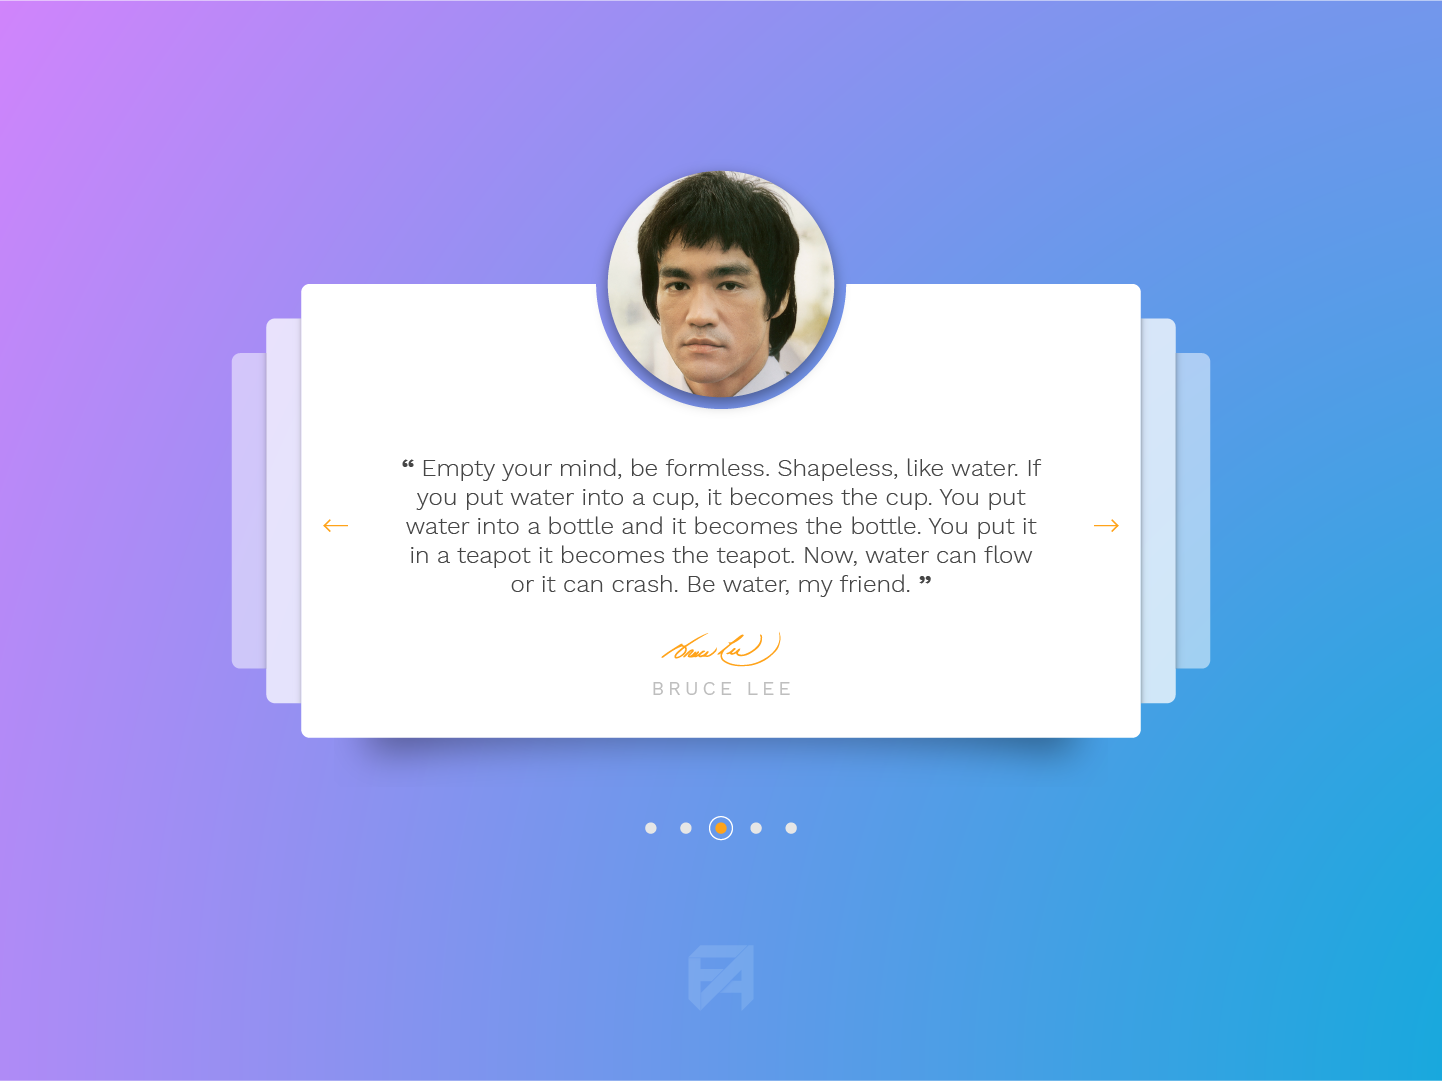 Daily UI Challenge 039: Testimonials uxui ux designer ux design ux user interface ui user experience ux ui designer ui design ui dailyuichallenge dailyui daily 100 challenge adobe xd adobe photoshop adobe illustrator adobe creative cloud adobe cc